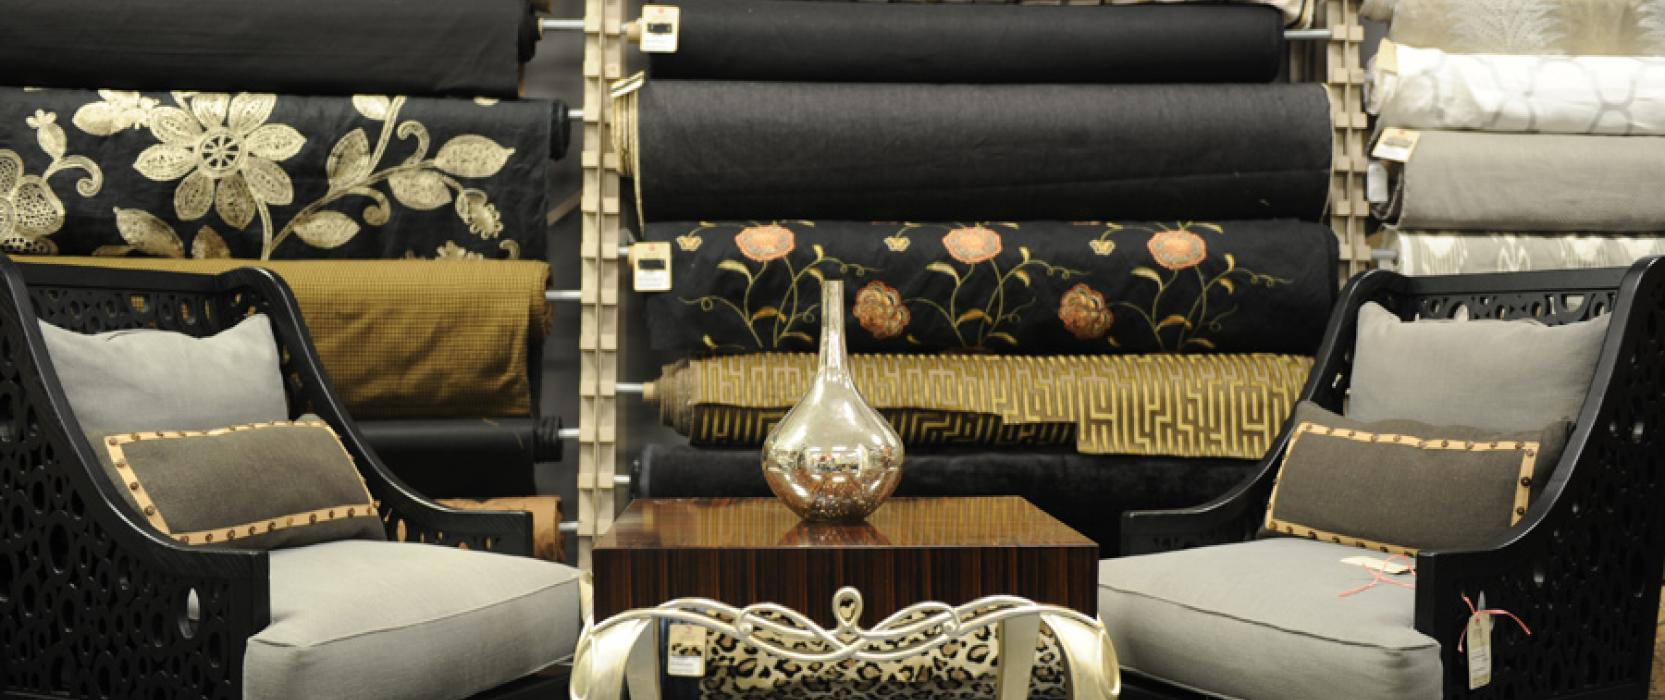 Artéé Fabrics & Home Room Sale & Natick Collection Store Opening